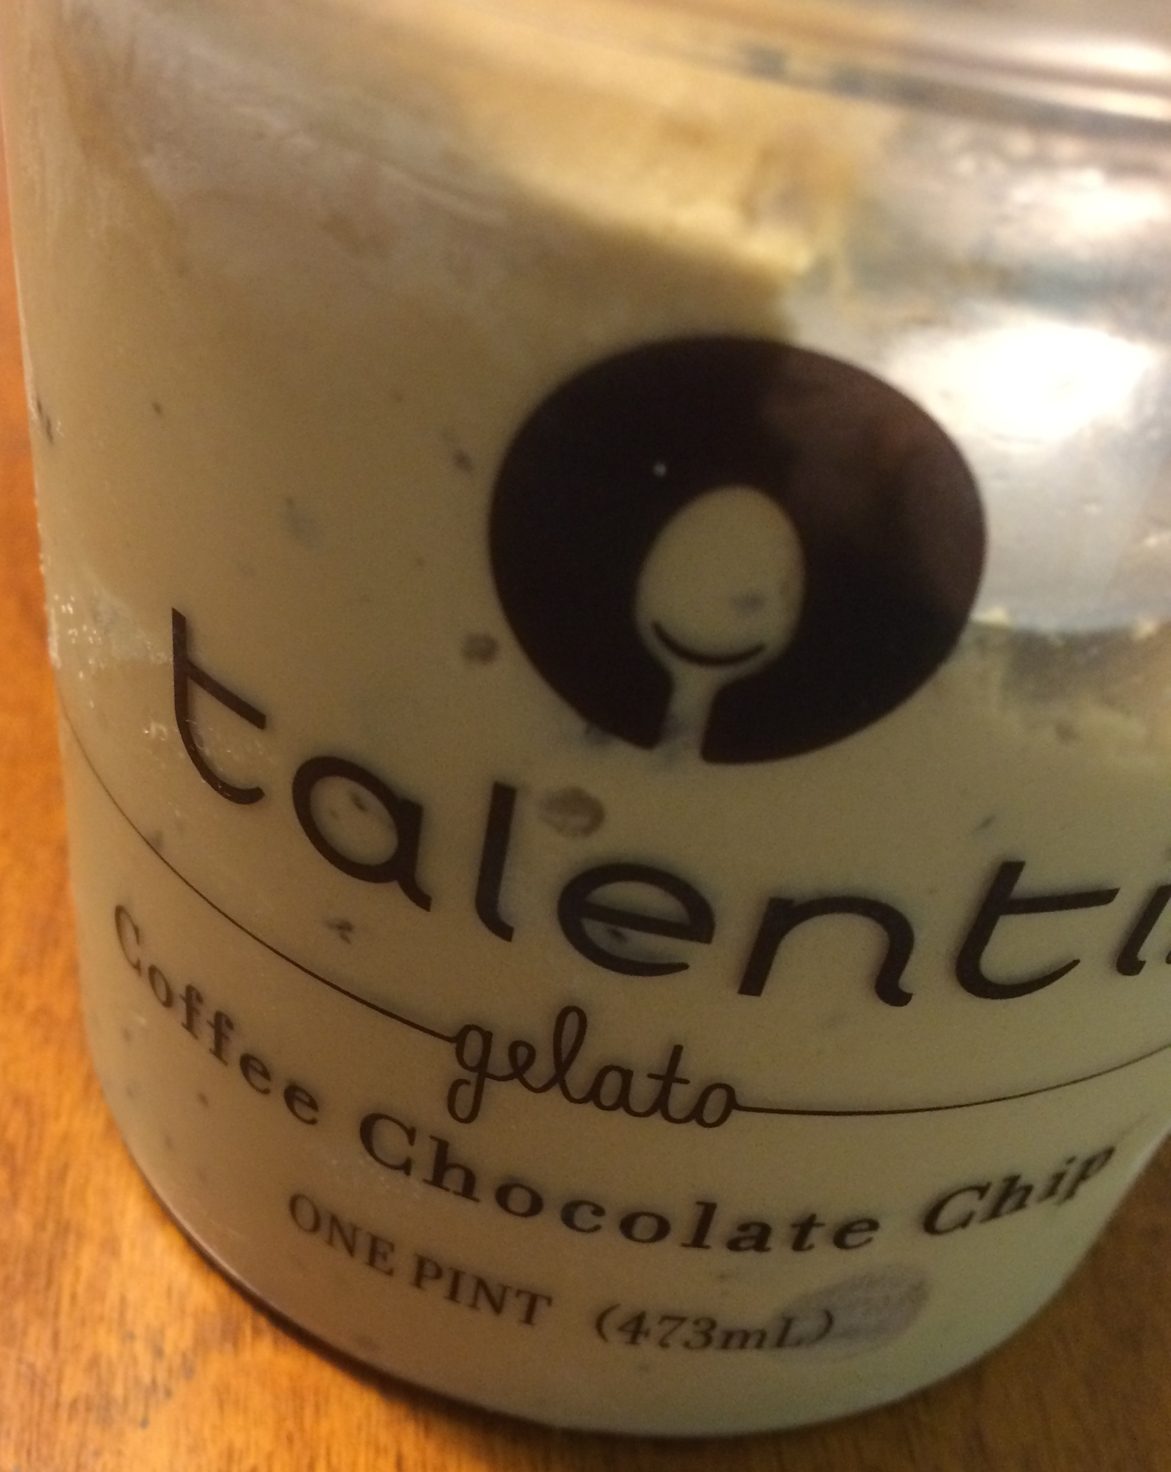 I absolutely love ice cream but I try not to keep it around too often or else i will reach for it every night.